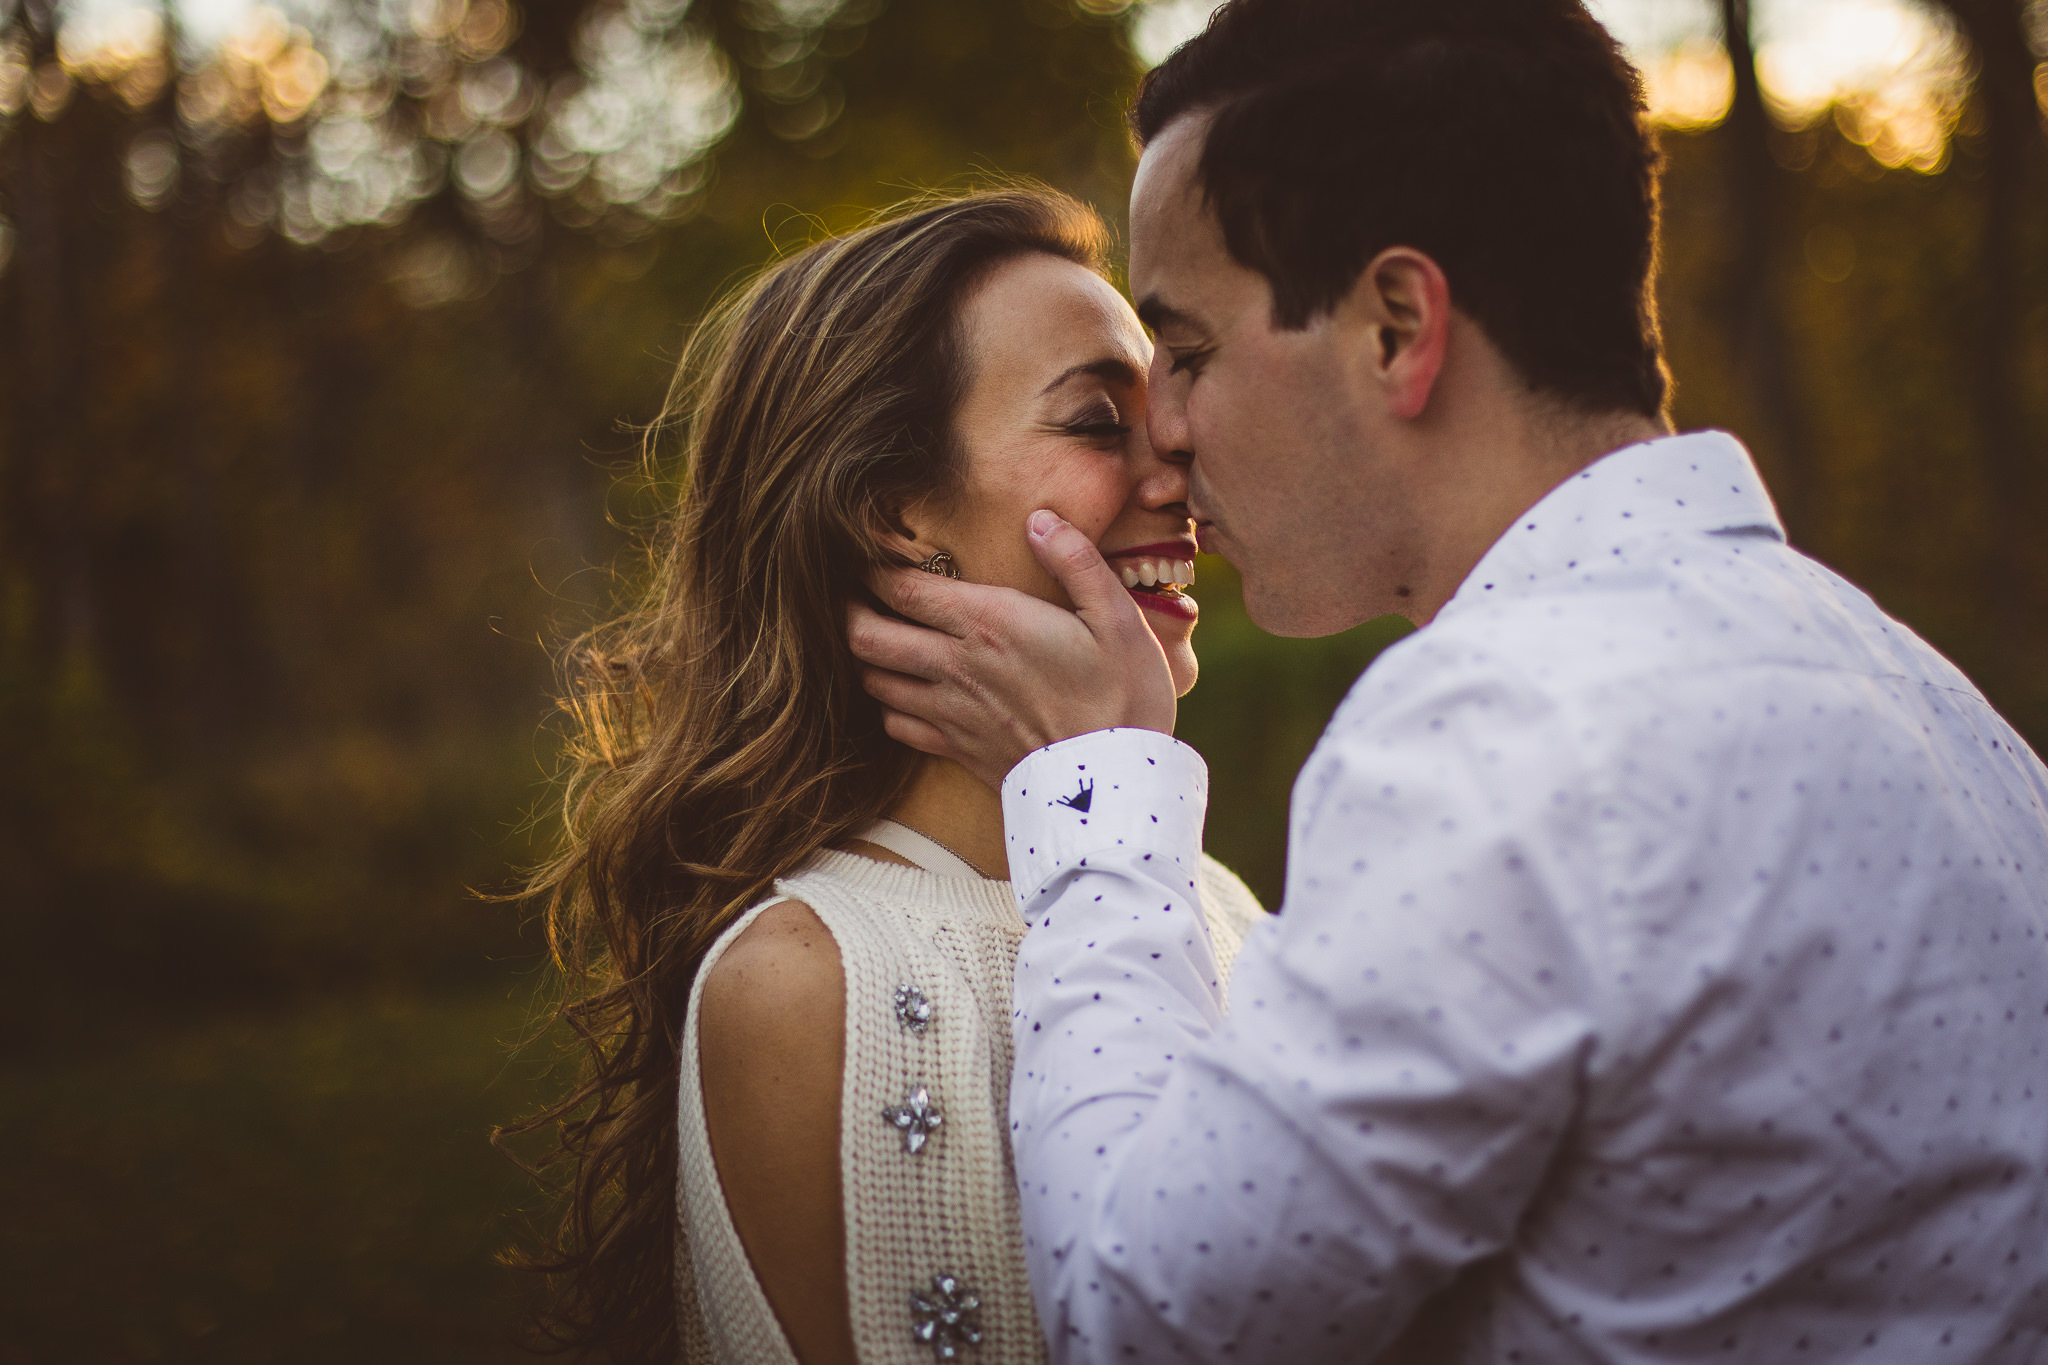 working within a budget or selling yourself short, how to bargain with a client, should wedding photographers negotiate, Should a wedding photographer negotiate